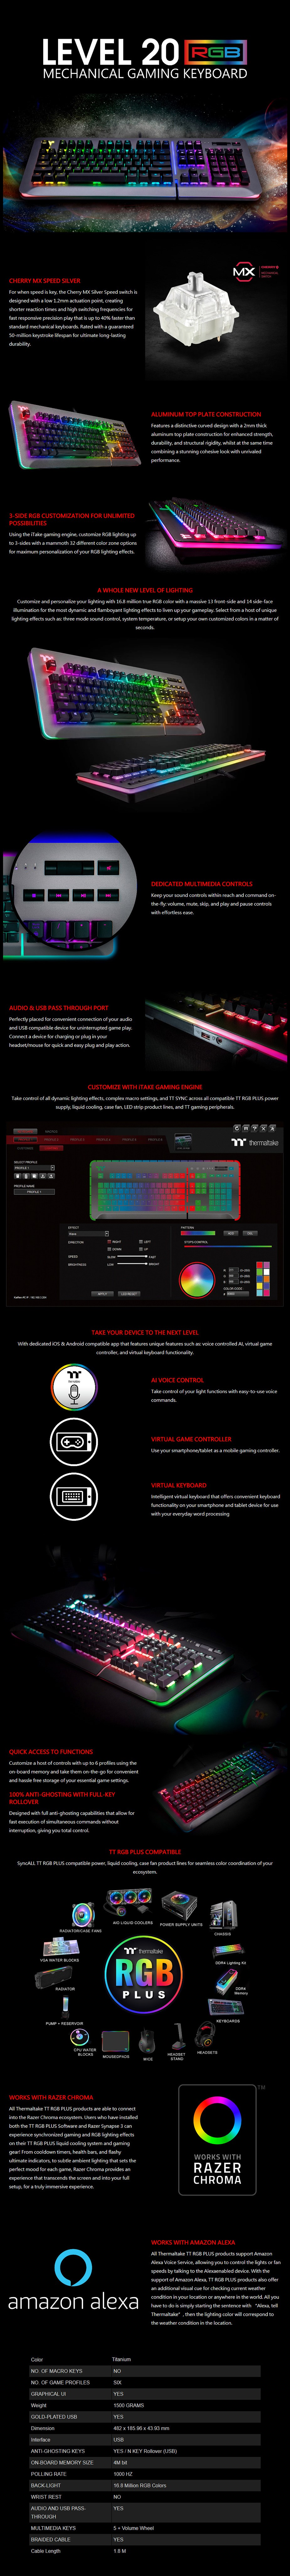 Thermaltake Level 20 RGB Titanium Mechanical Gaming Keyboard - Cherry MX Speed - Desktop Overview 1